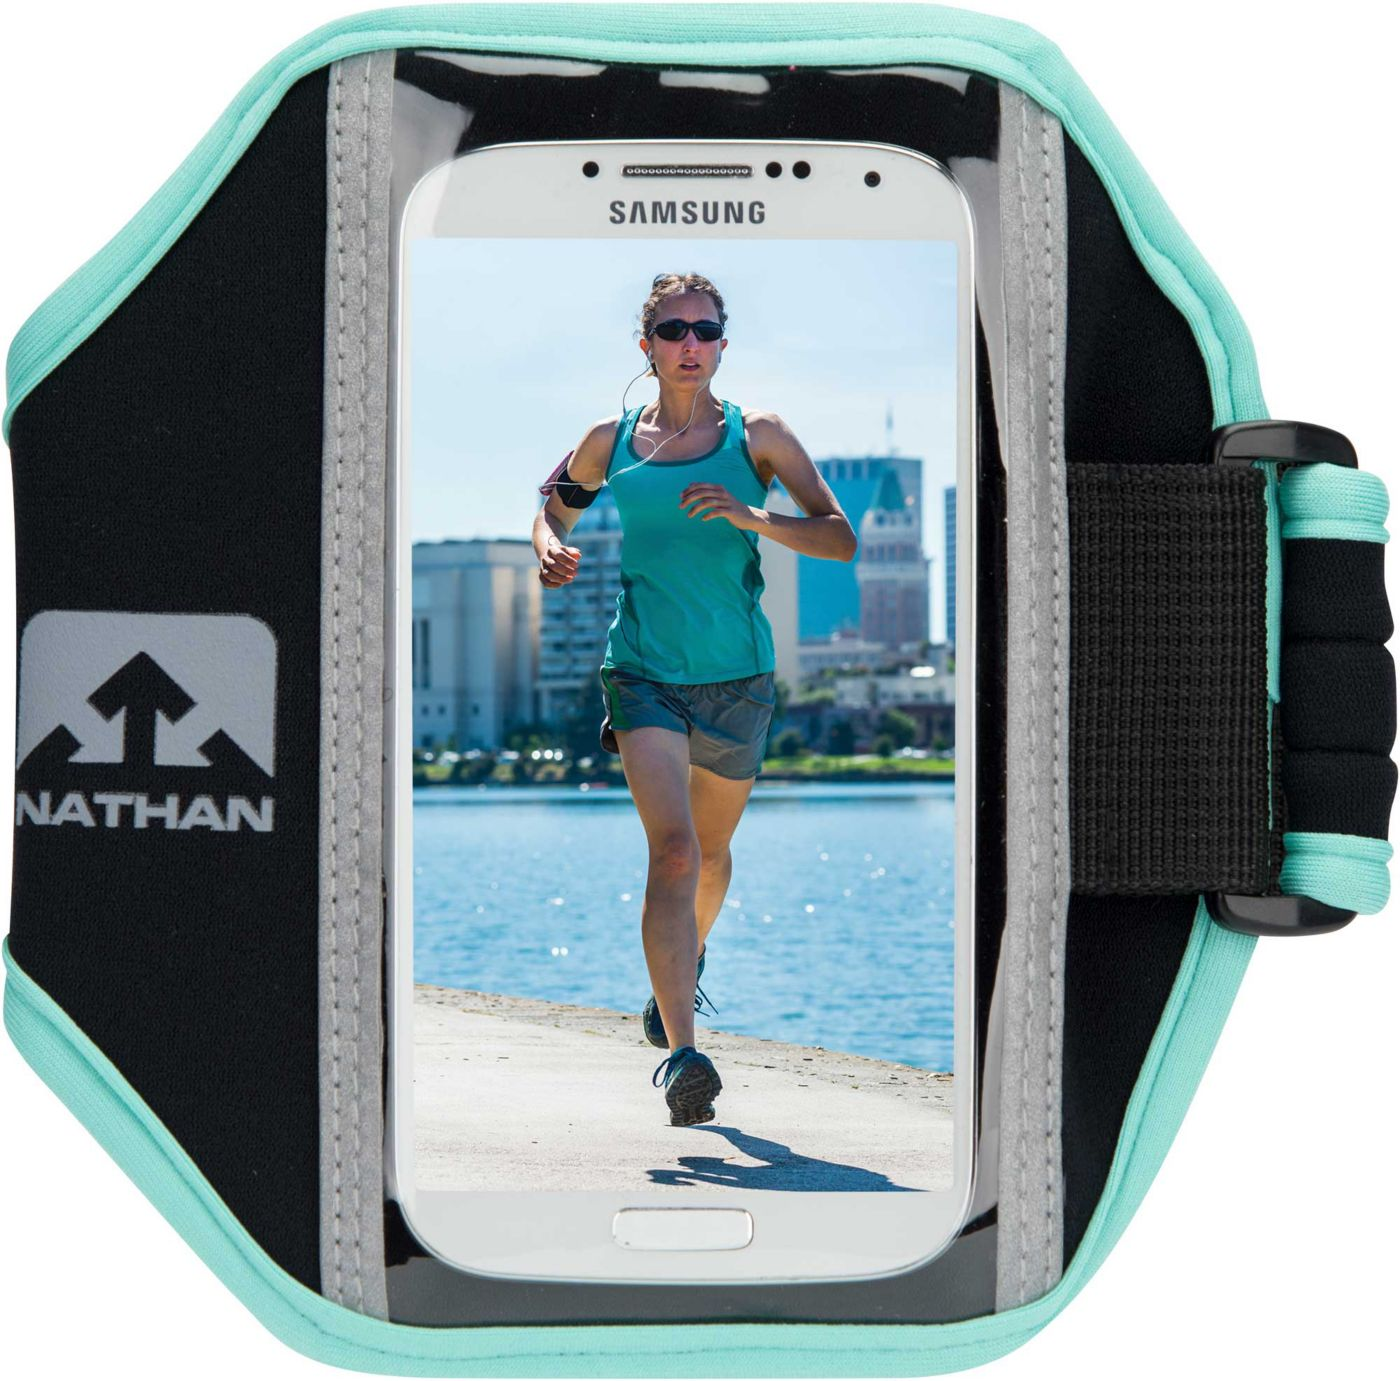 Nathan Sports Super 5K Smartphone Carrier